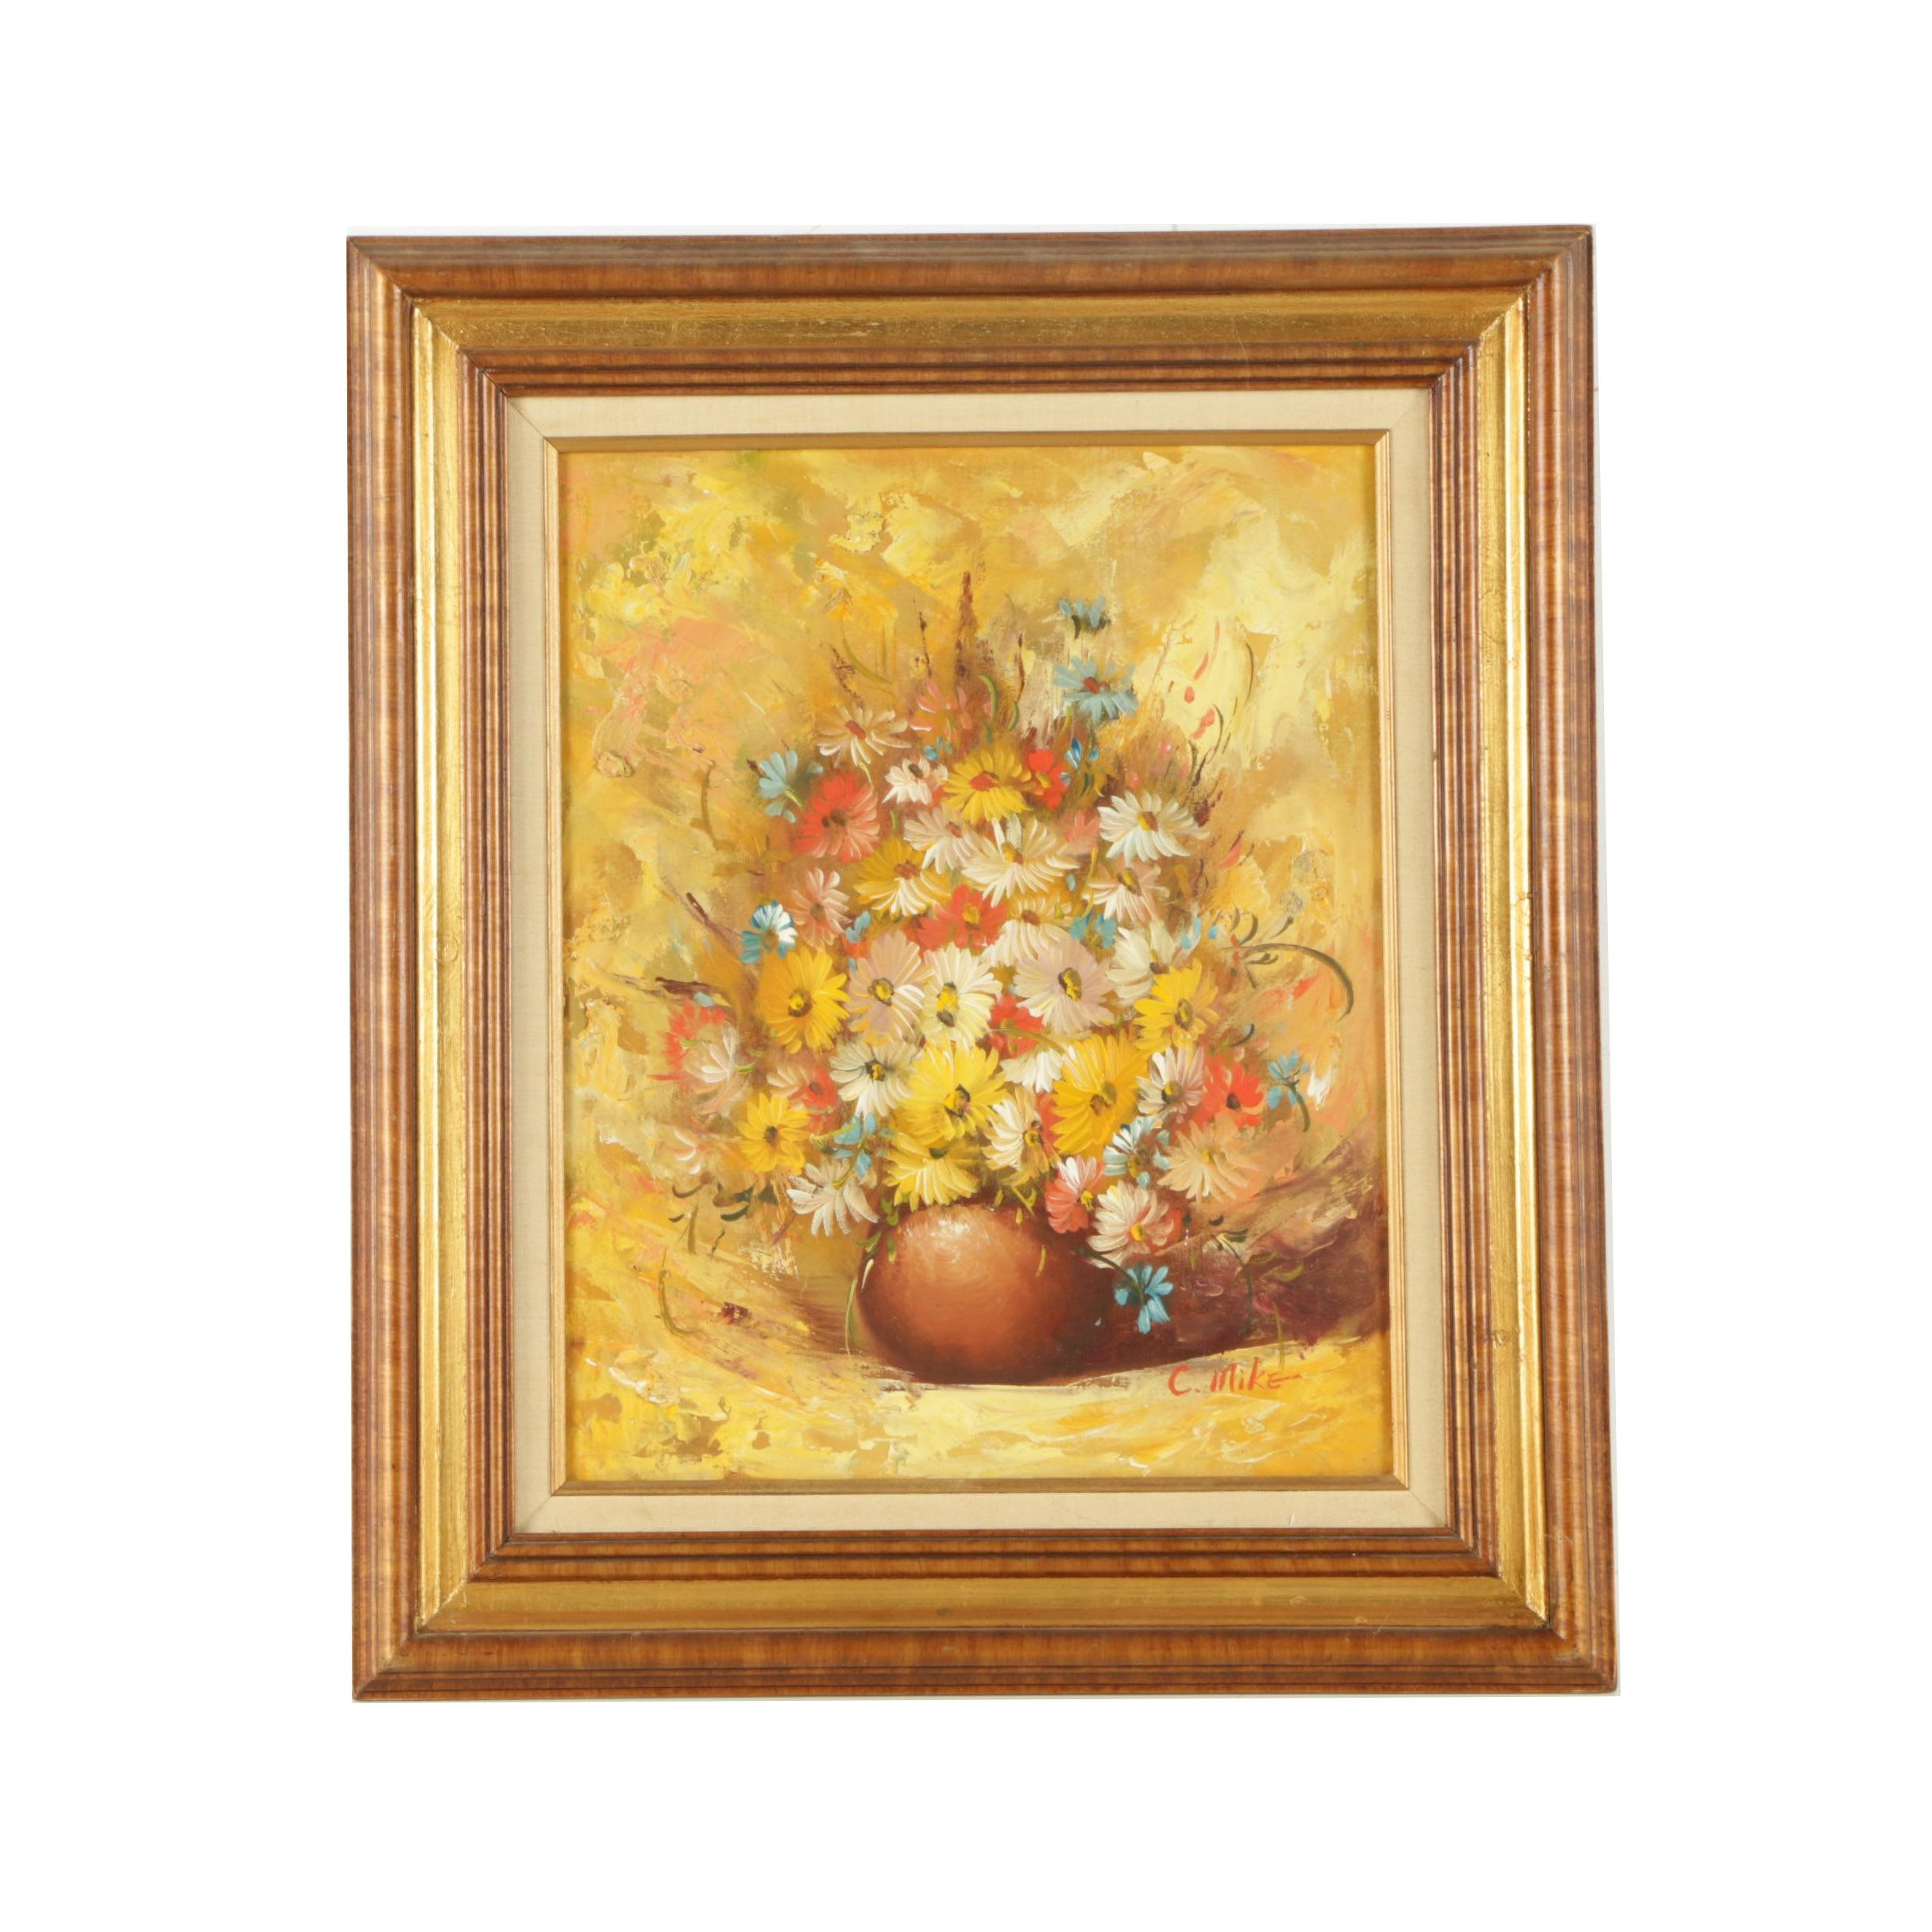 C. Mike Still Life Oil Painting on Canvas Board